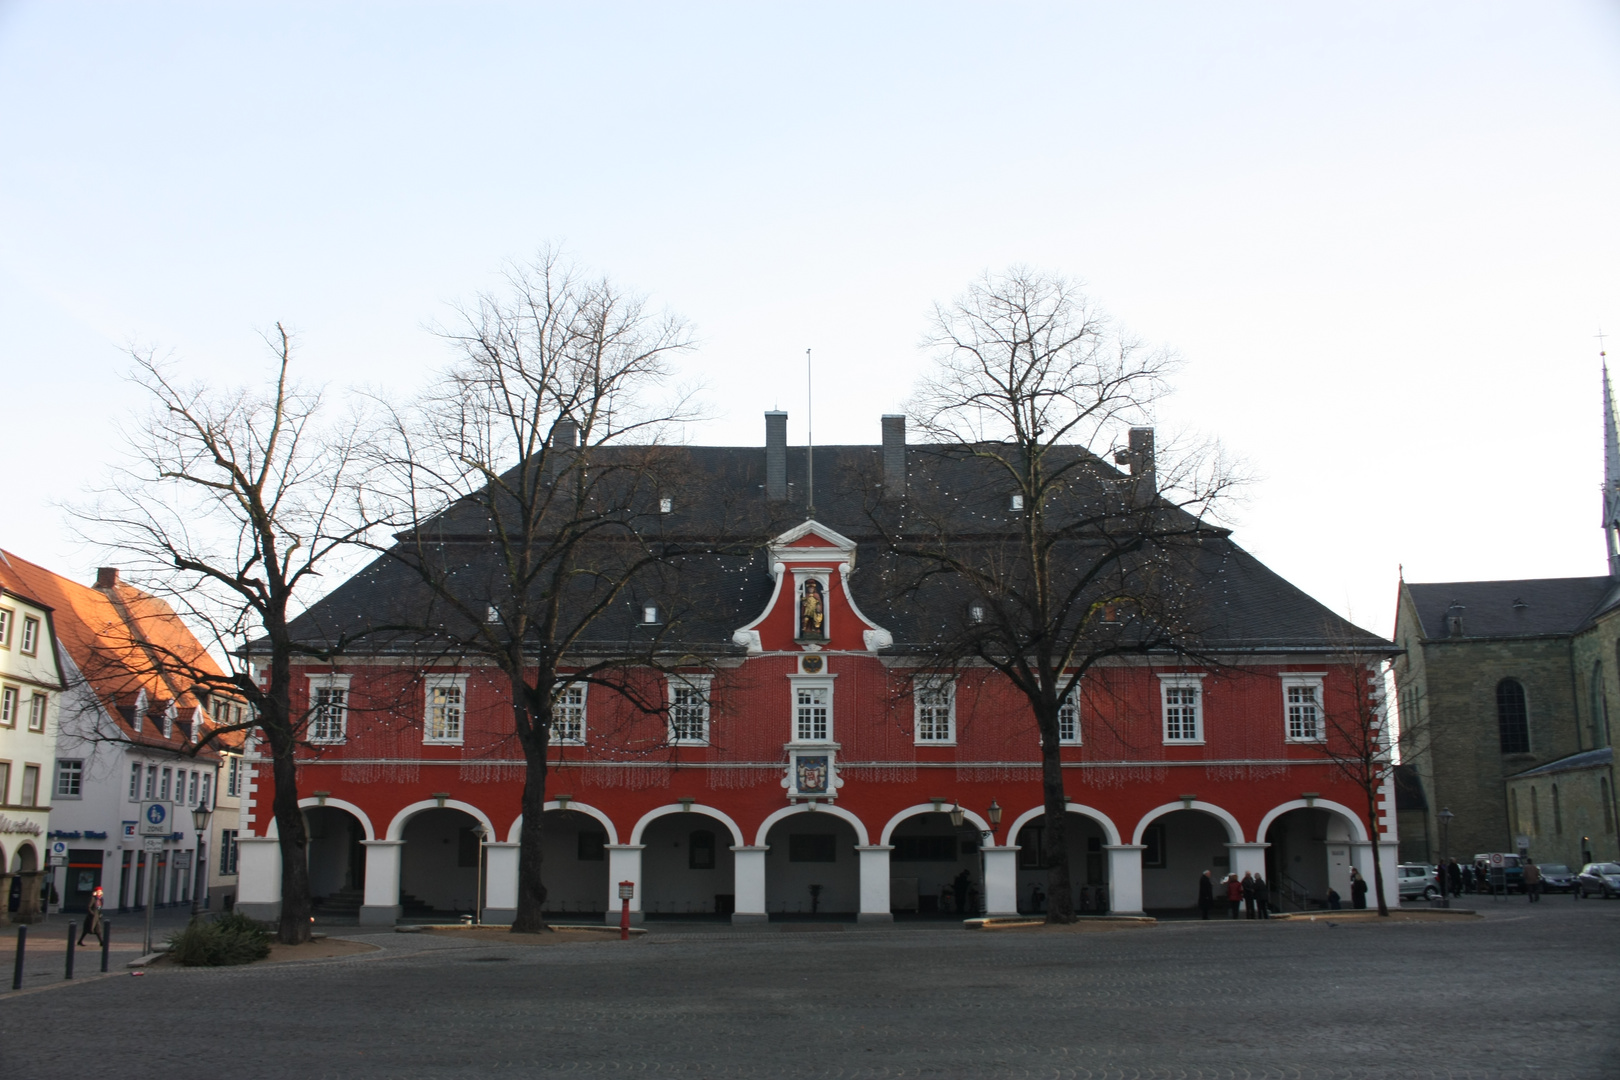 Rathaus Soest,Soest Townhall